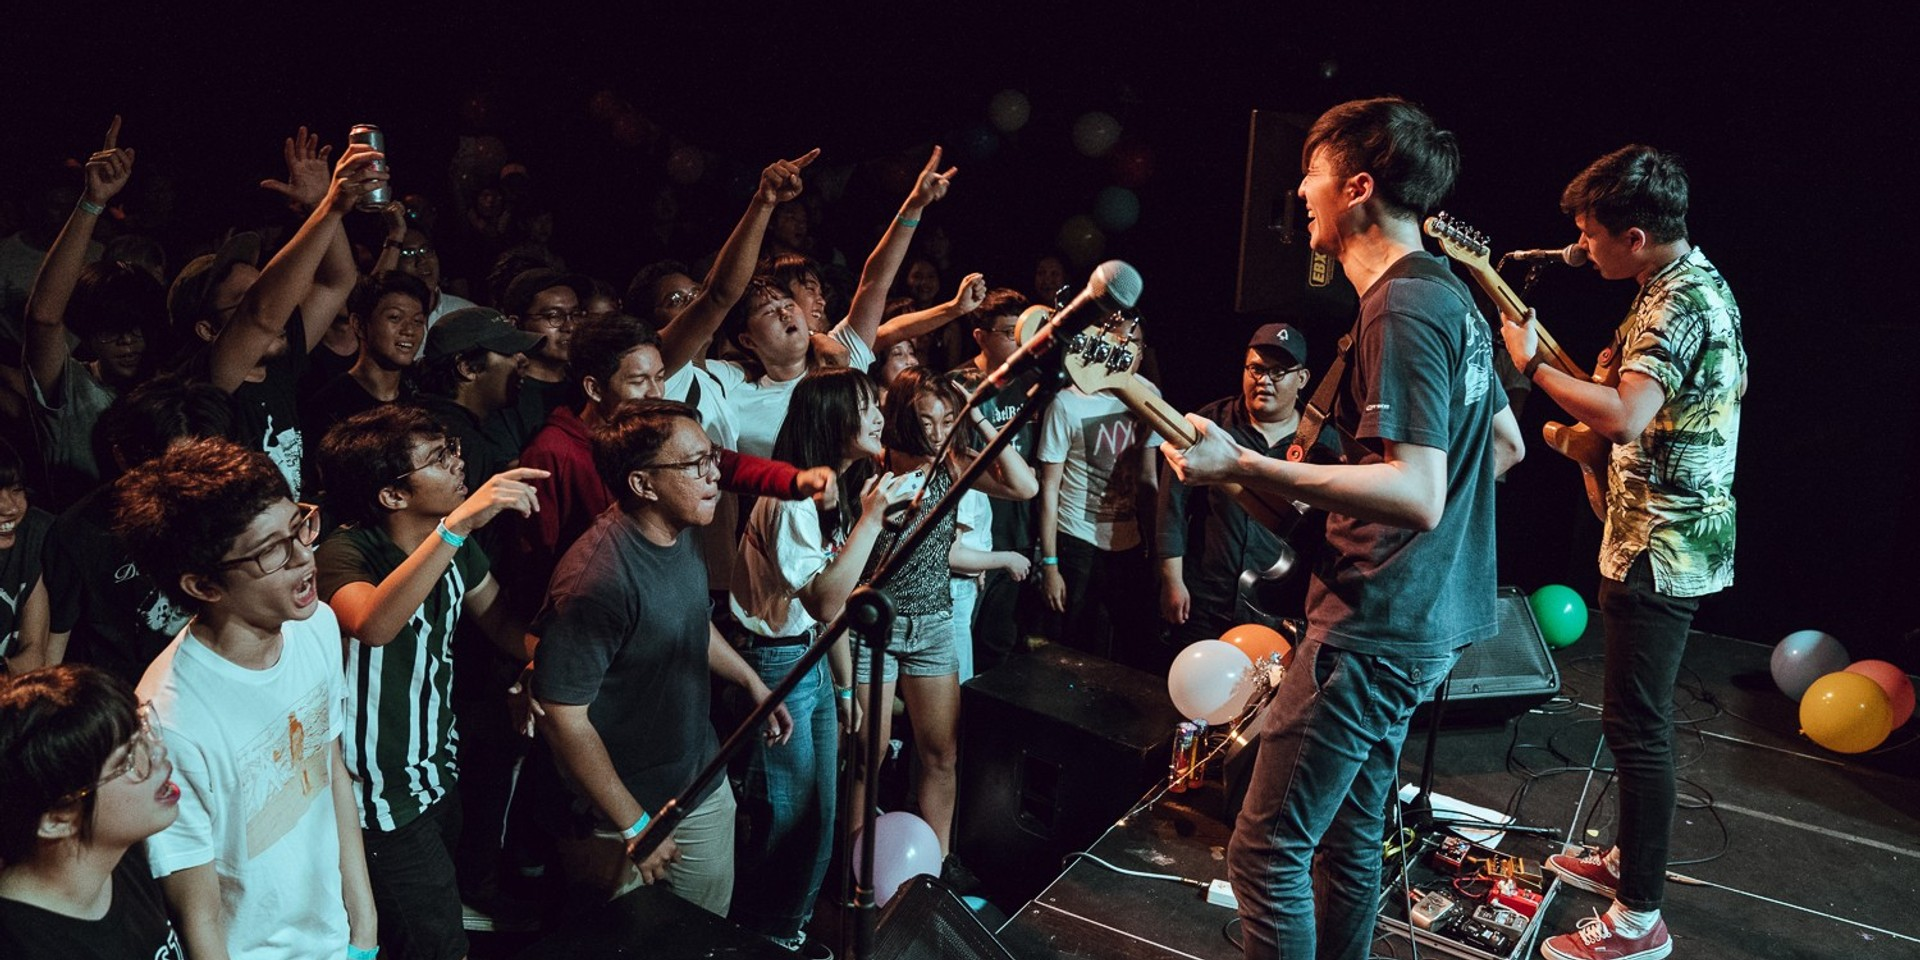 Xingfoo&Roy throw down for a night of fun with friends – photo gallery